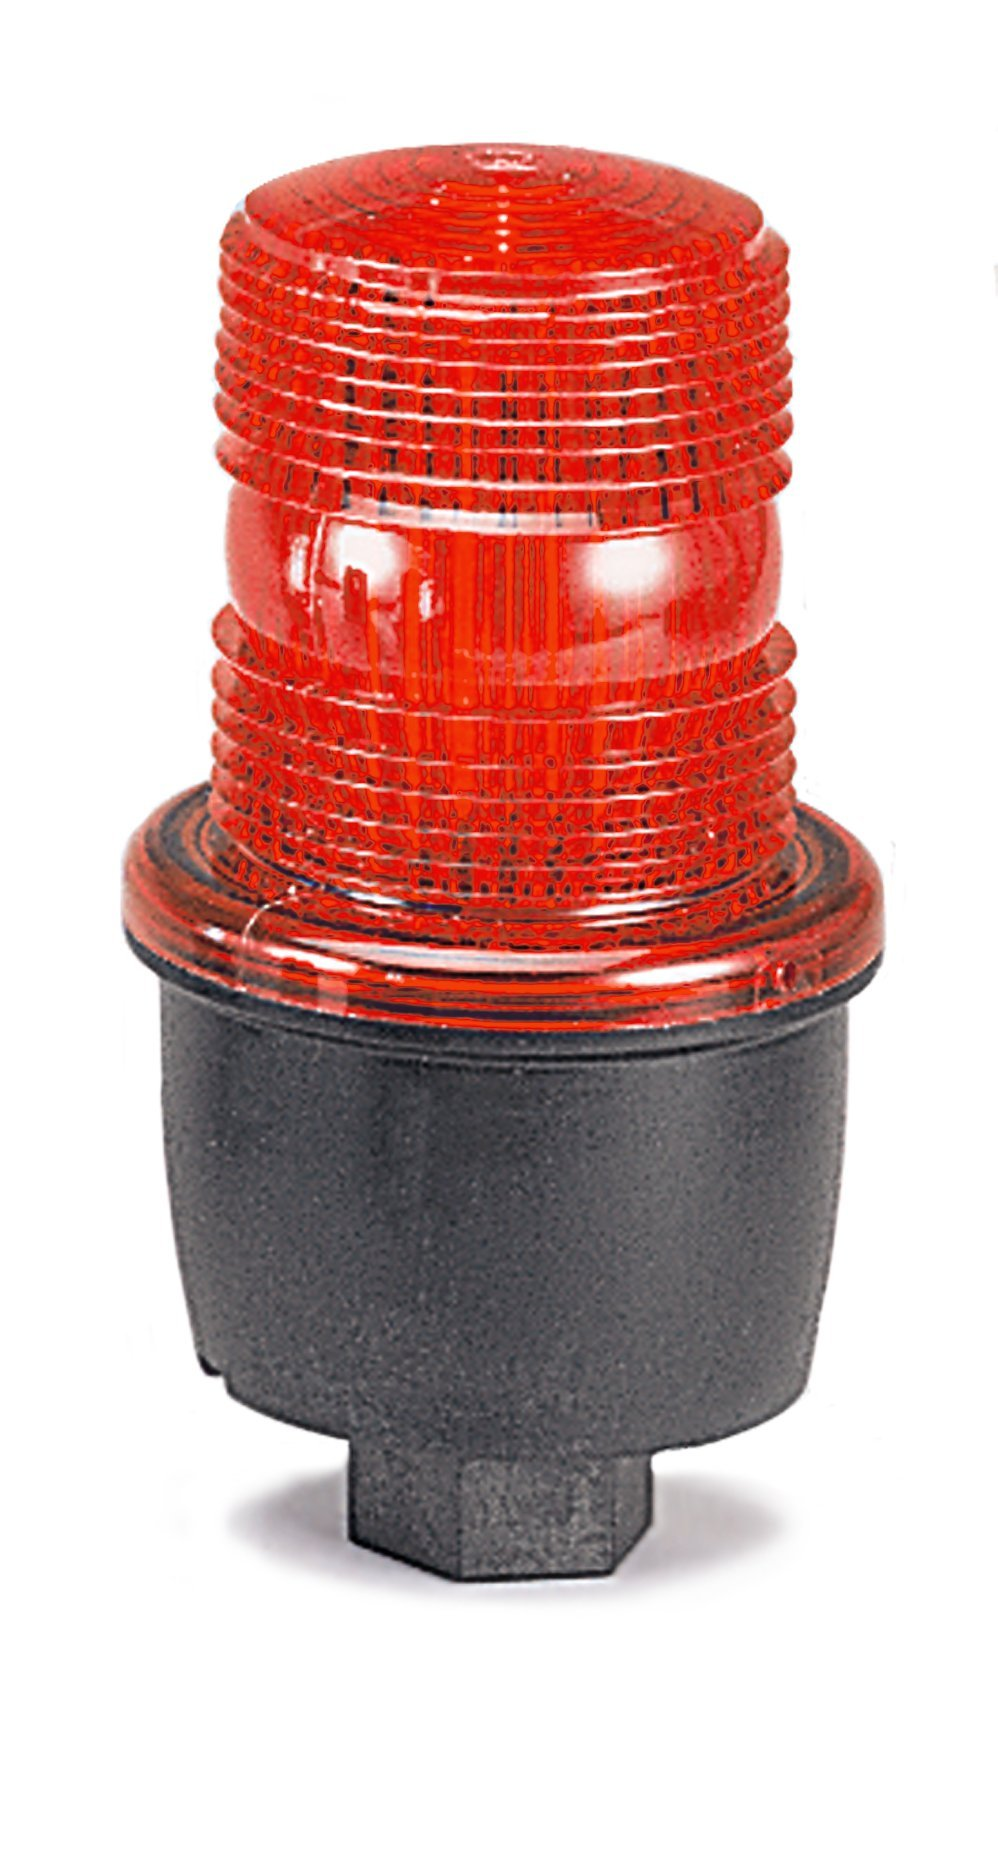 Federal Signal LP3P-120R Streamline Low Profile Strobe Light, Pipe Mount, 120 VAC, Red by Federal Signal